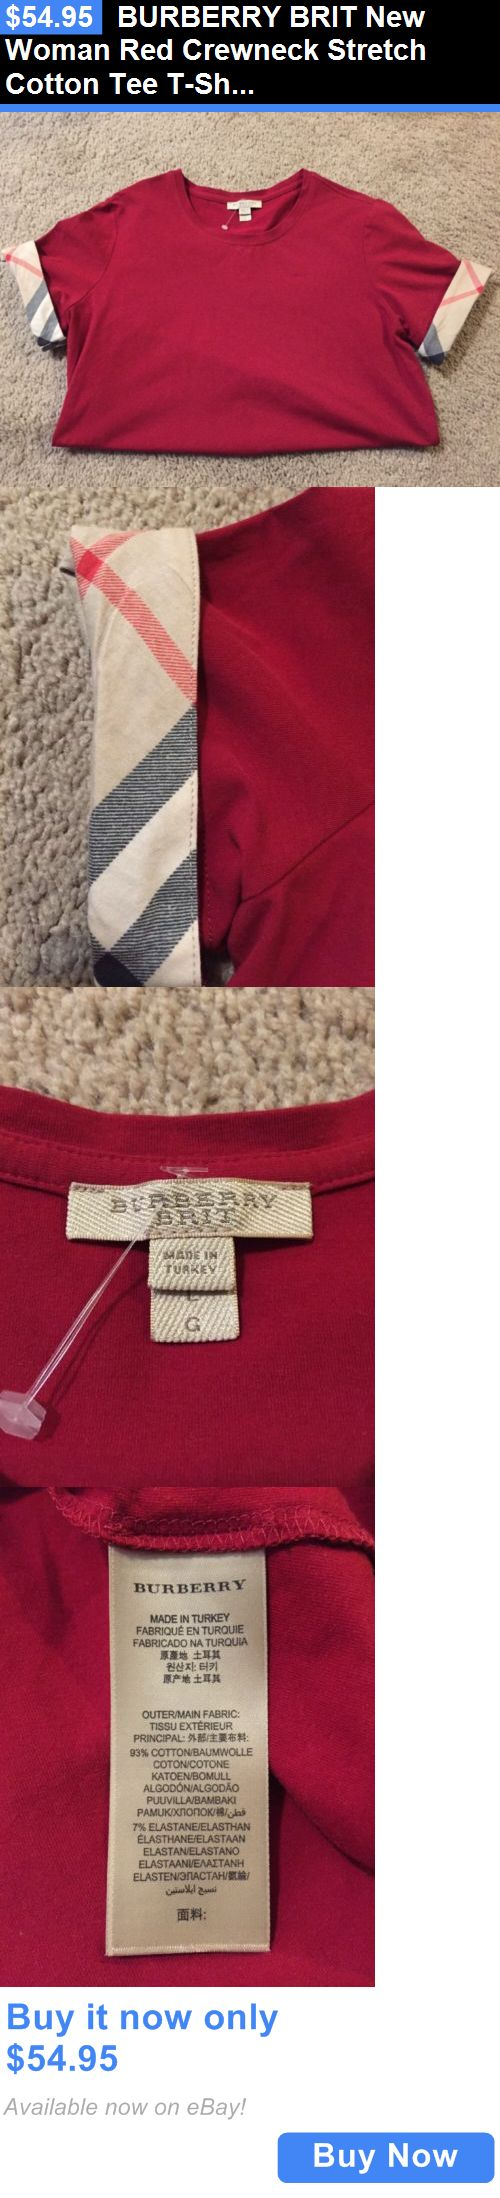 Women T Shirts: Burberry Brit New Woman Red Crewneck Stretch Cotton Tee T-Shirt Size L $129 Nwt BUY IT NOW ONLY: $54.95